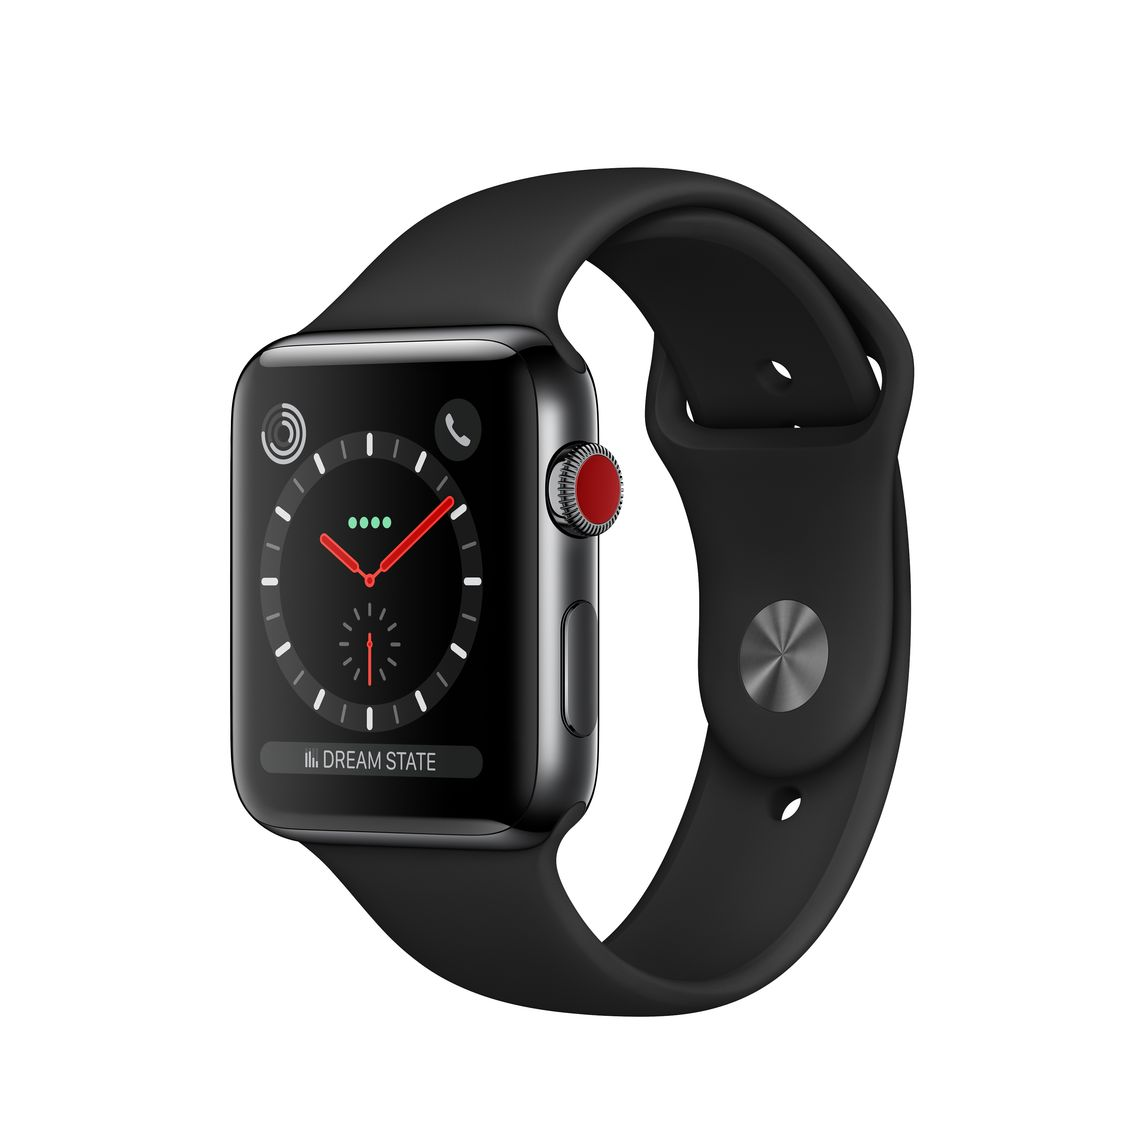 42mm Space Black Stainless Steel Case